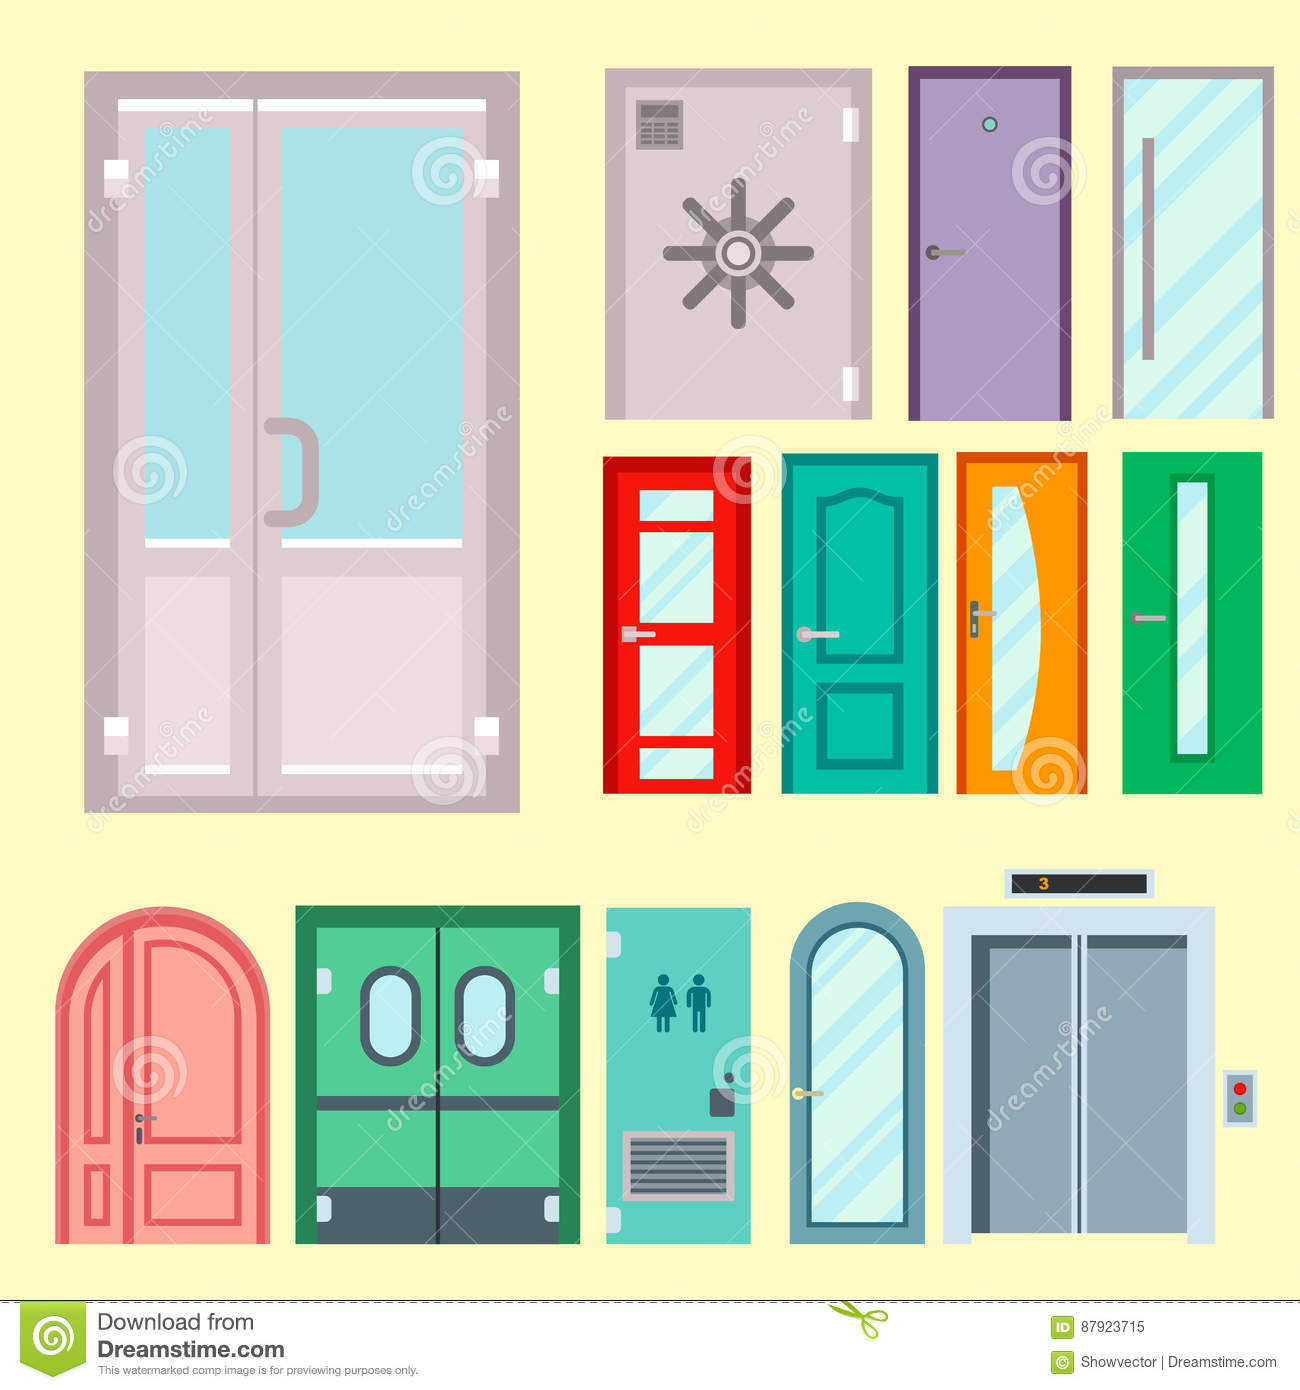 Doors Isolated Vector Illustration Entrance Doorway Home